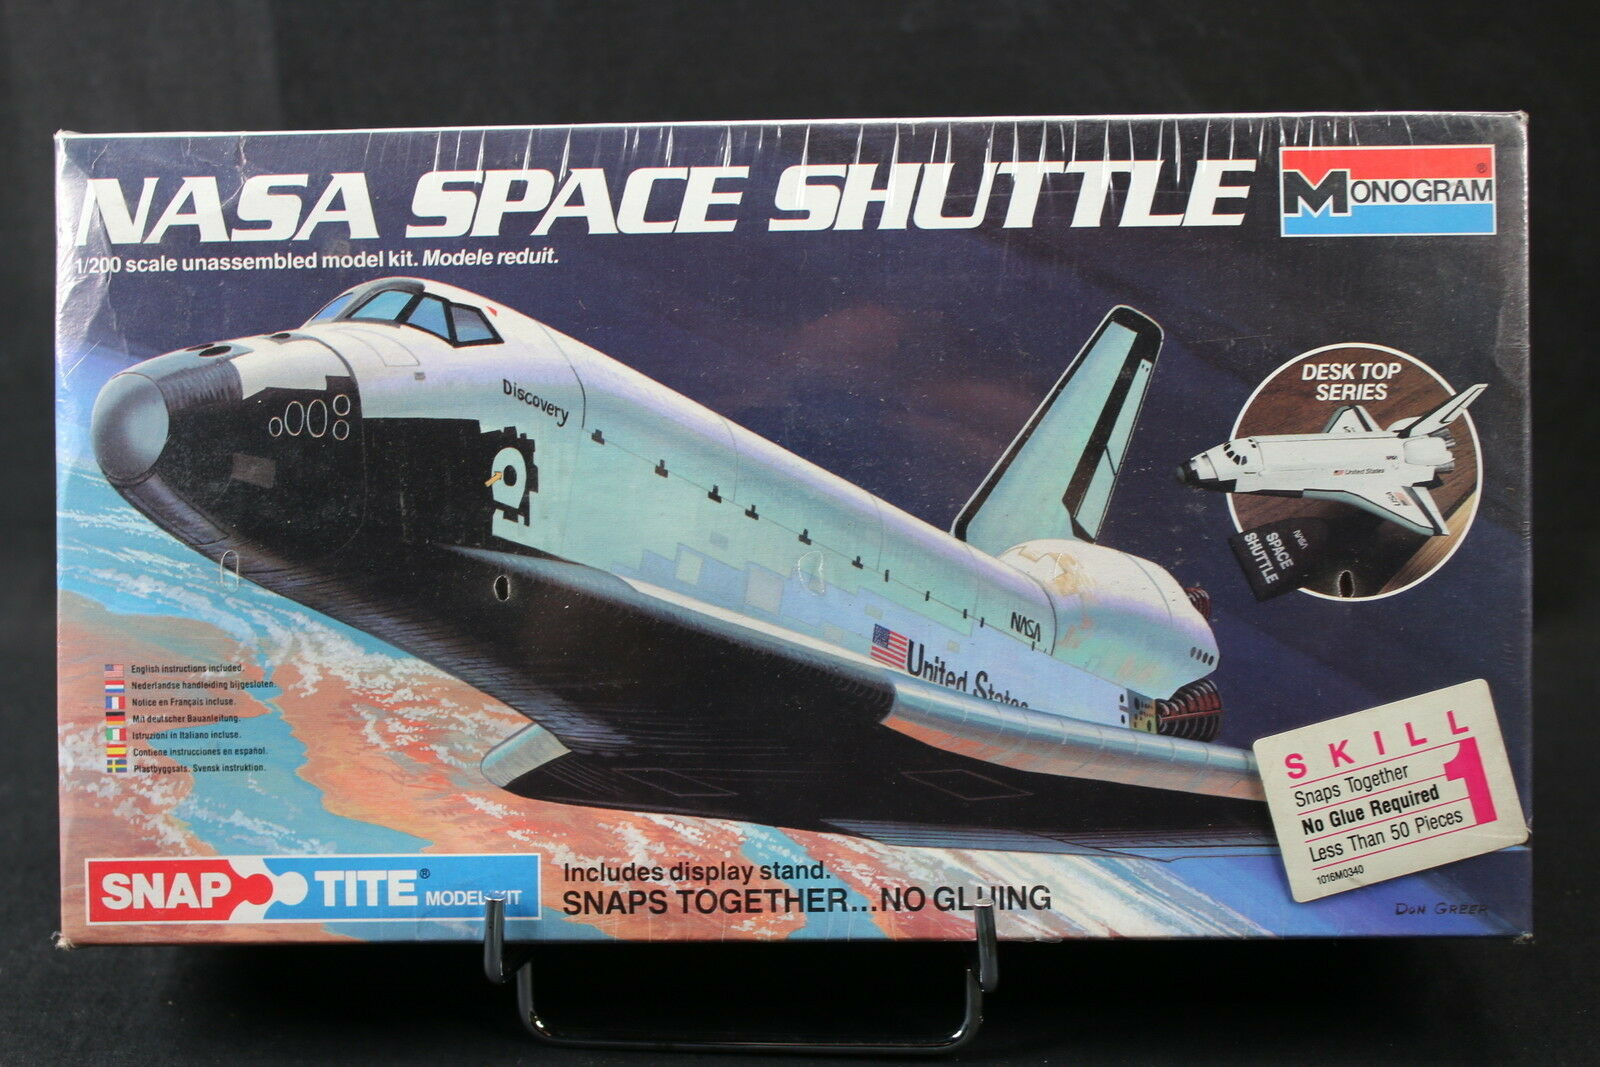 200 1 MONOGRAM YH032 maquette discovery Shuttle Space Nasa